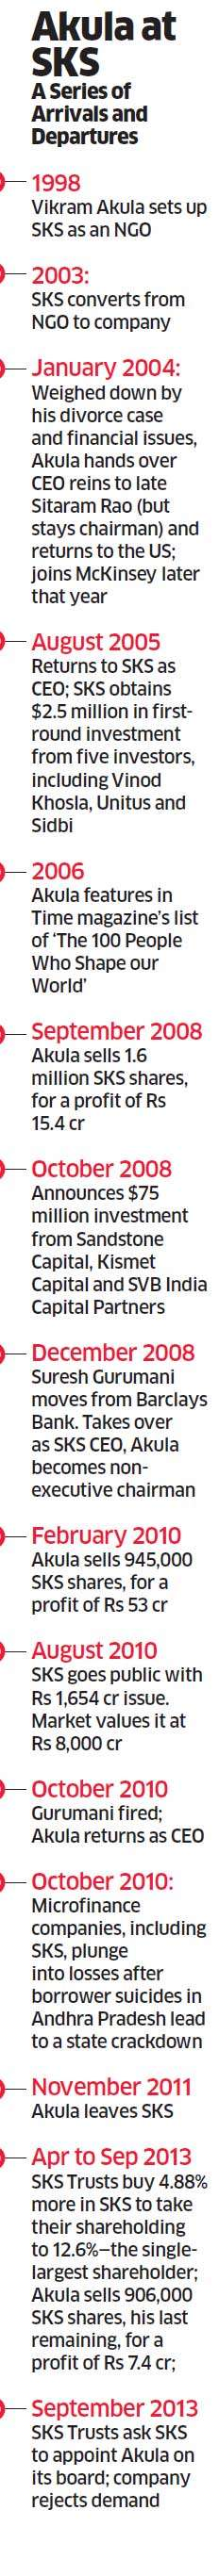 Vikram Akula's attempt to return to SKS Microfinance rests on Rs 250 crore trusts